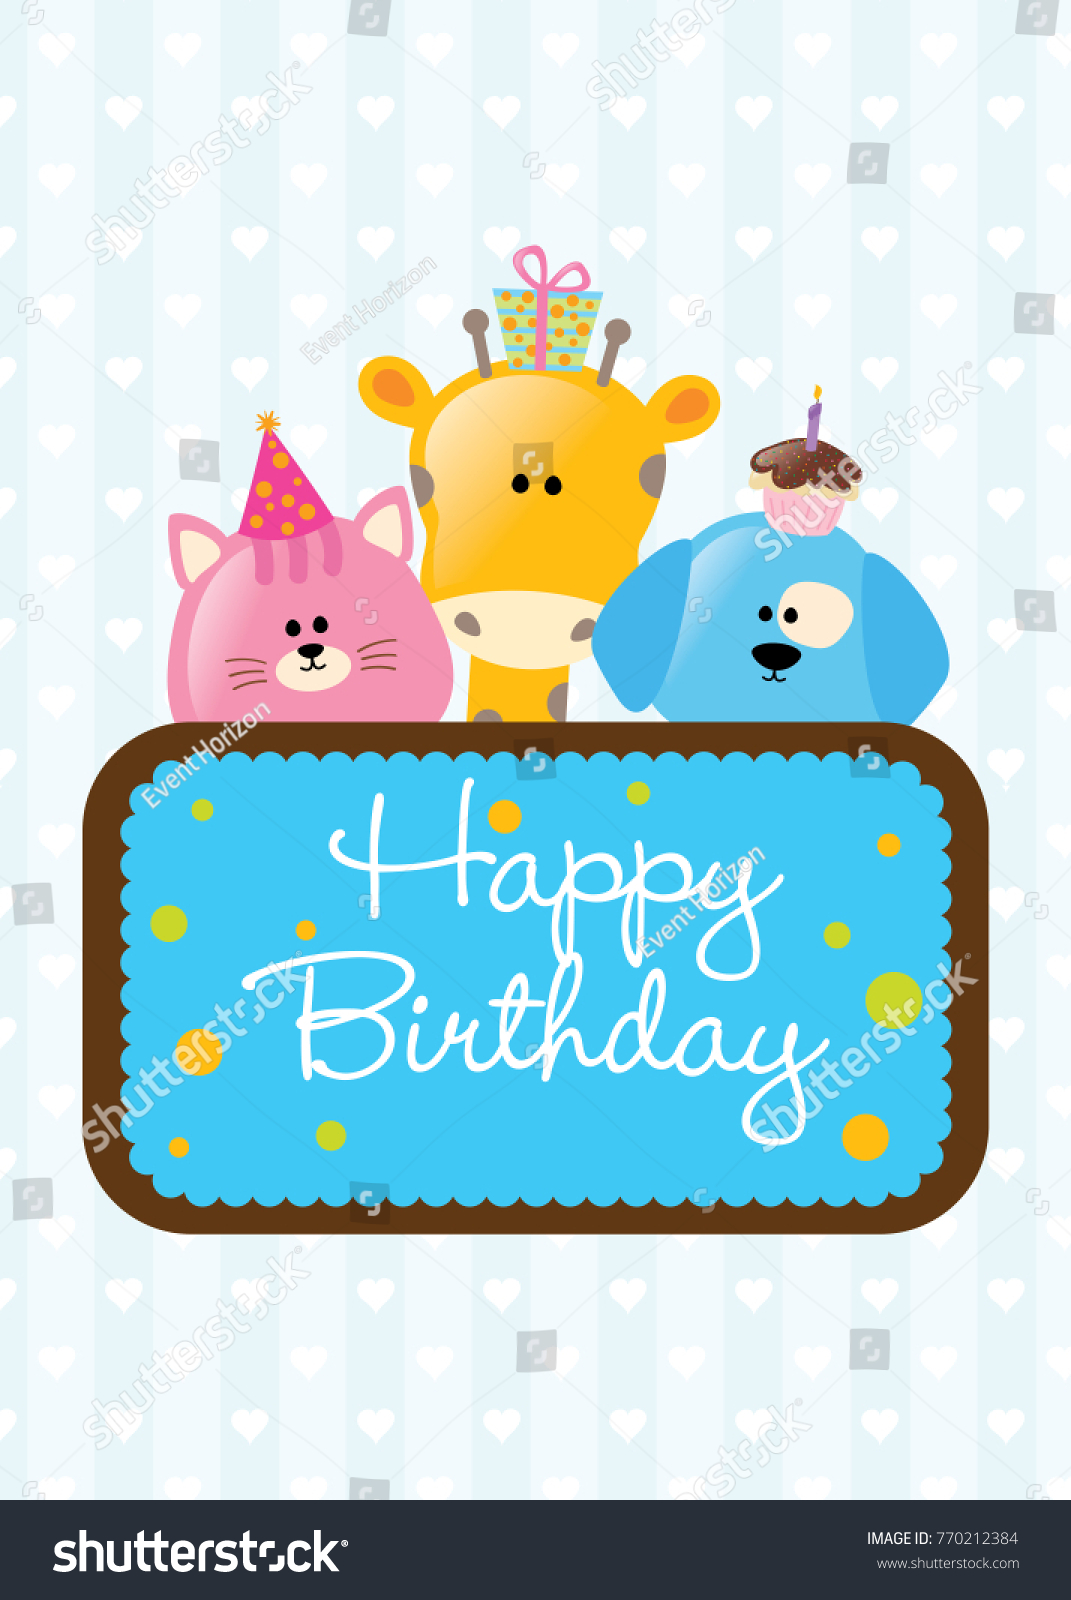 Happy Birthday Card Greeting Wishing Ecard Stock Vector Royalty